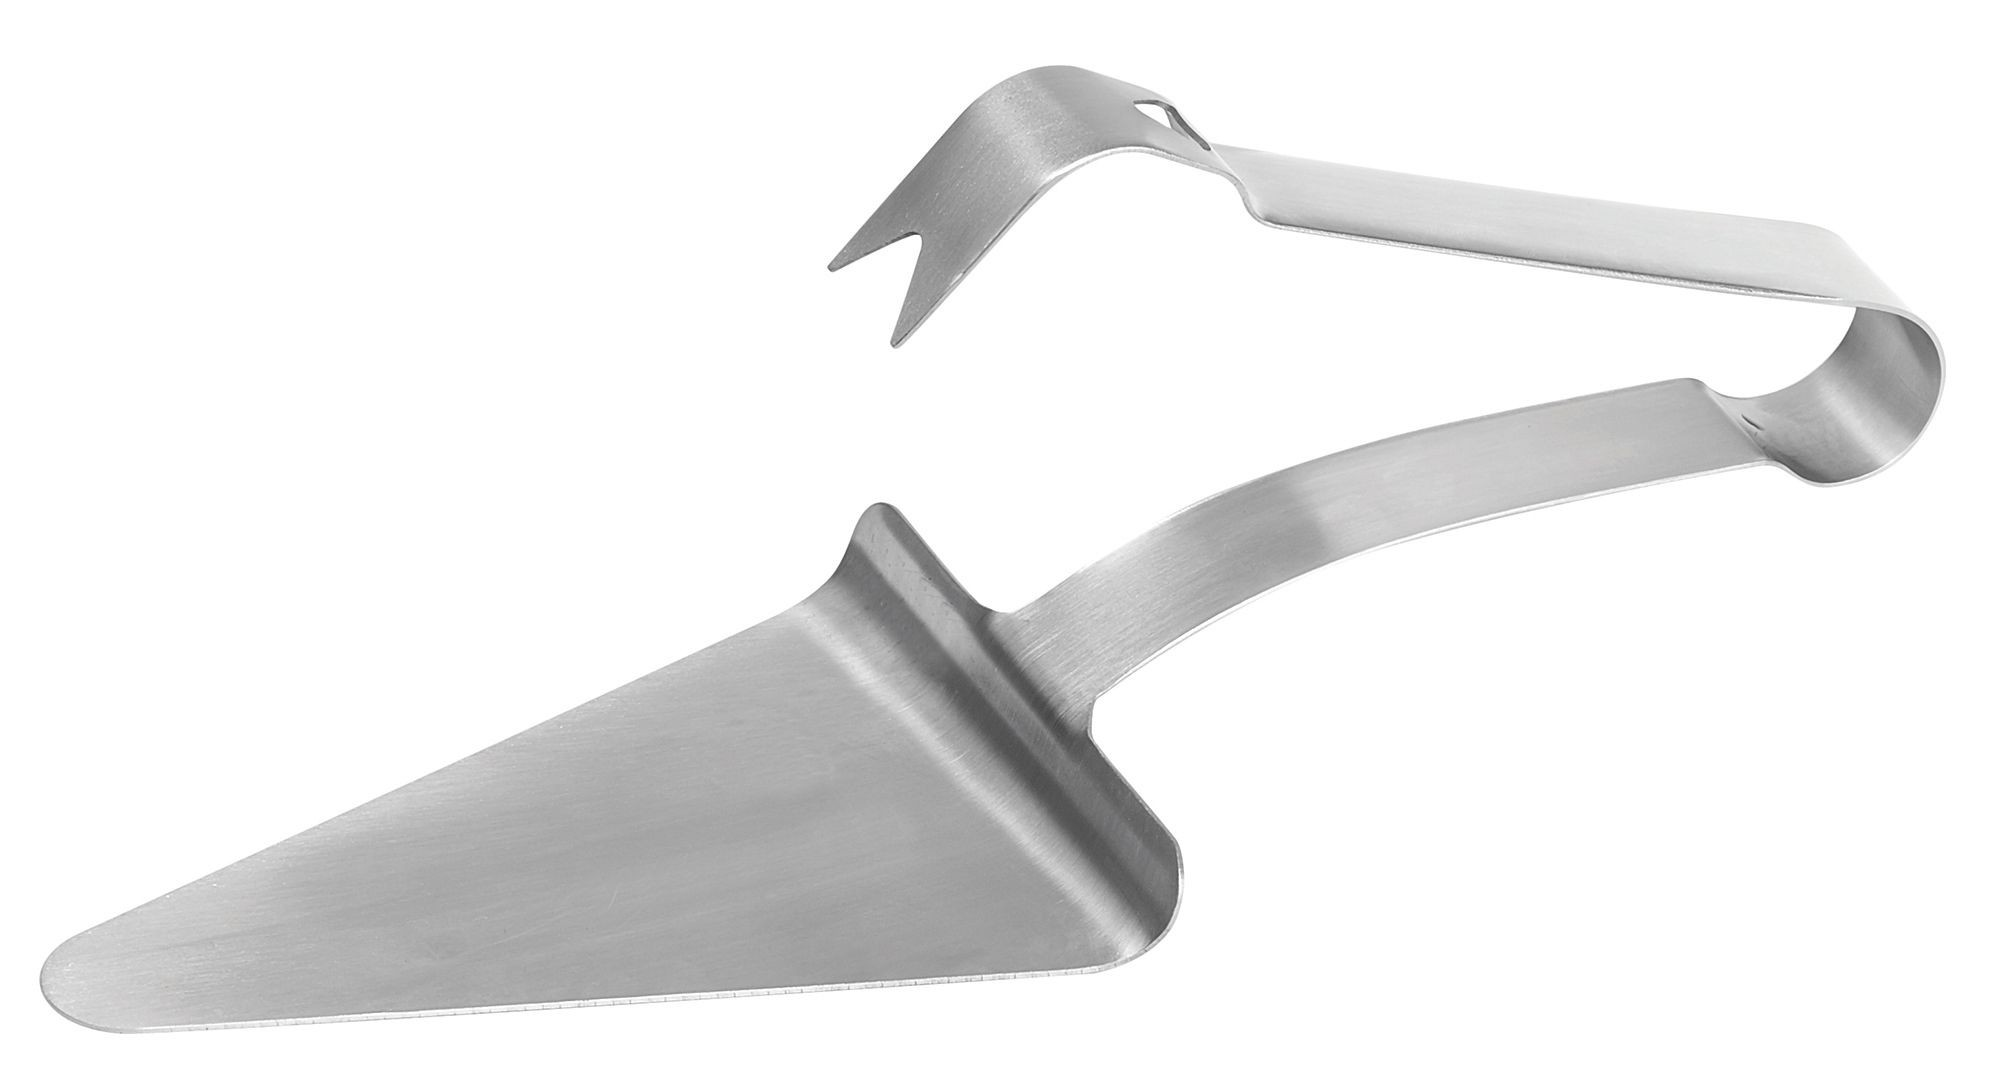 "Winco PZG-6 Pizza Server Tongs 5-1/2"" x 4-1/2"""